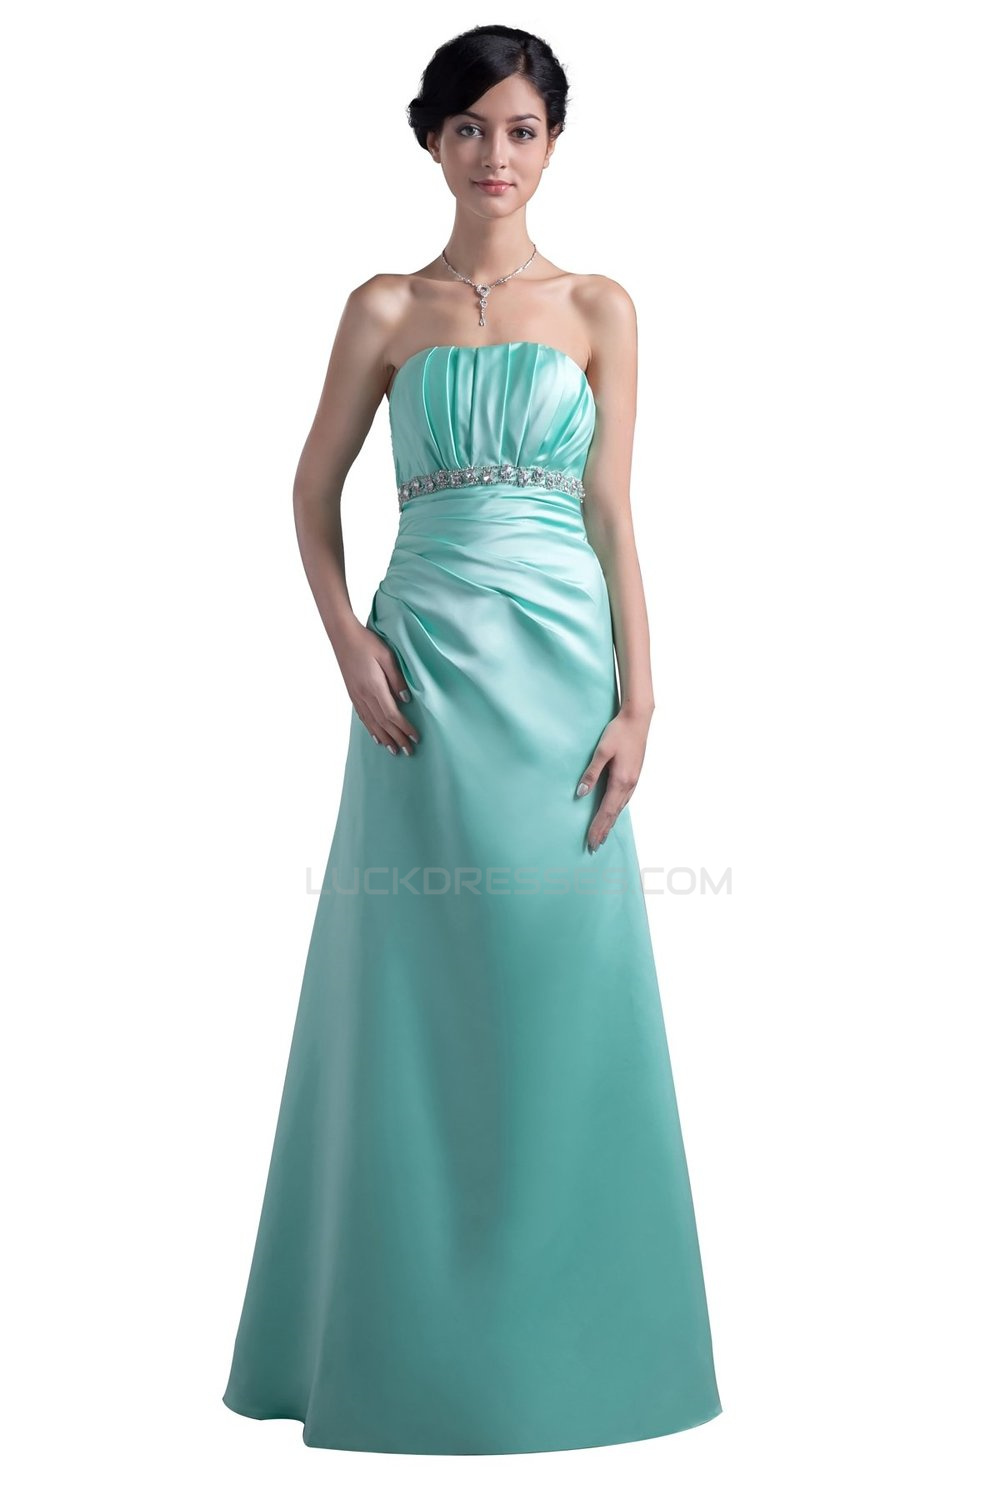 Line Strapless Long Blue Prom Evening Formal Party Dresses ED010474